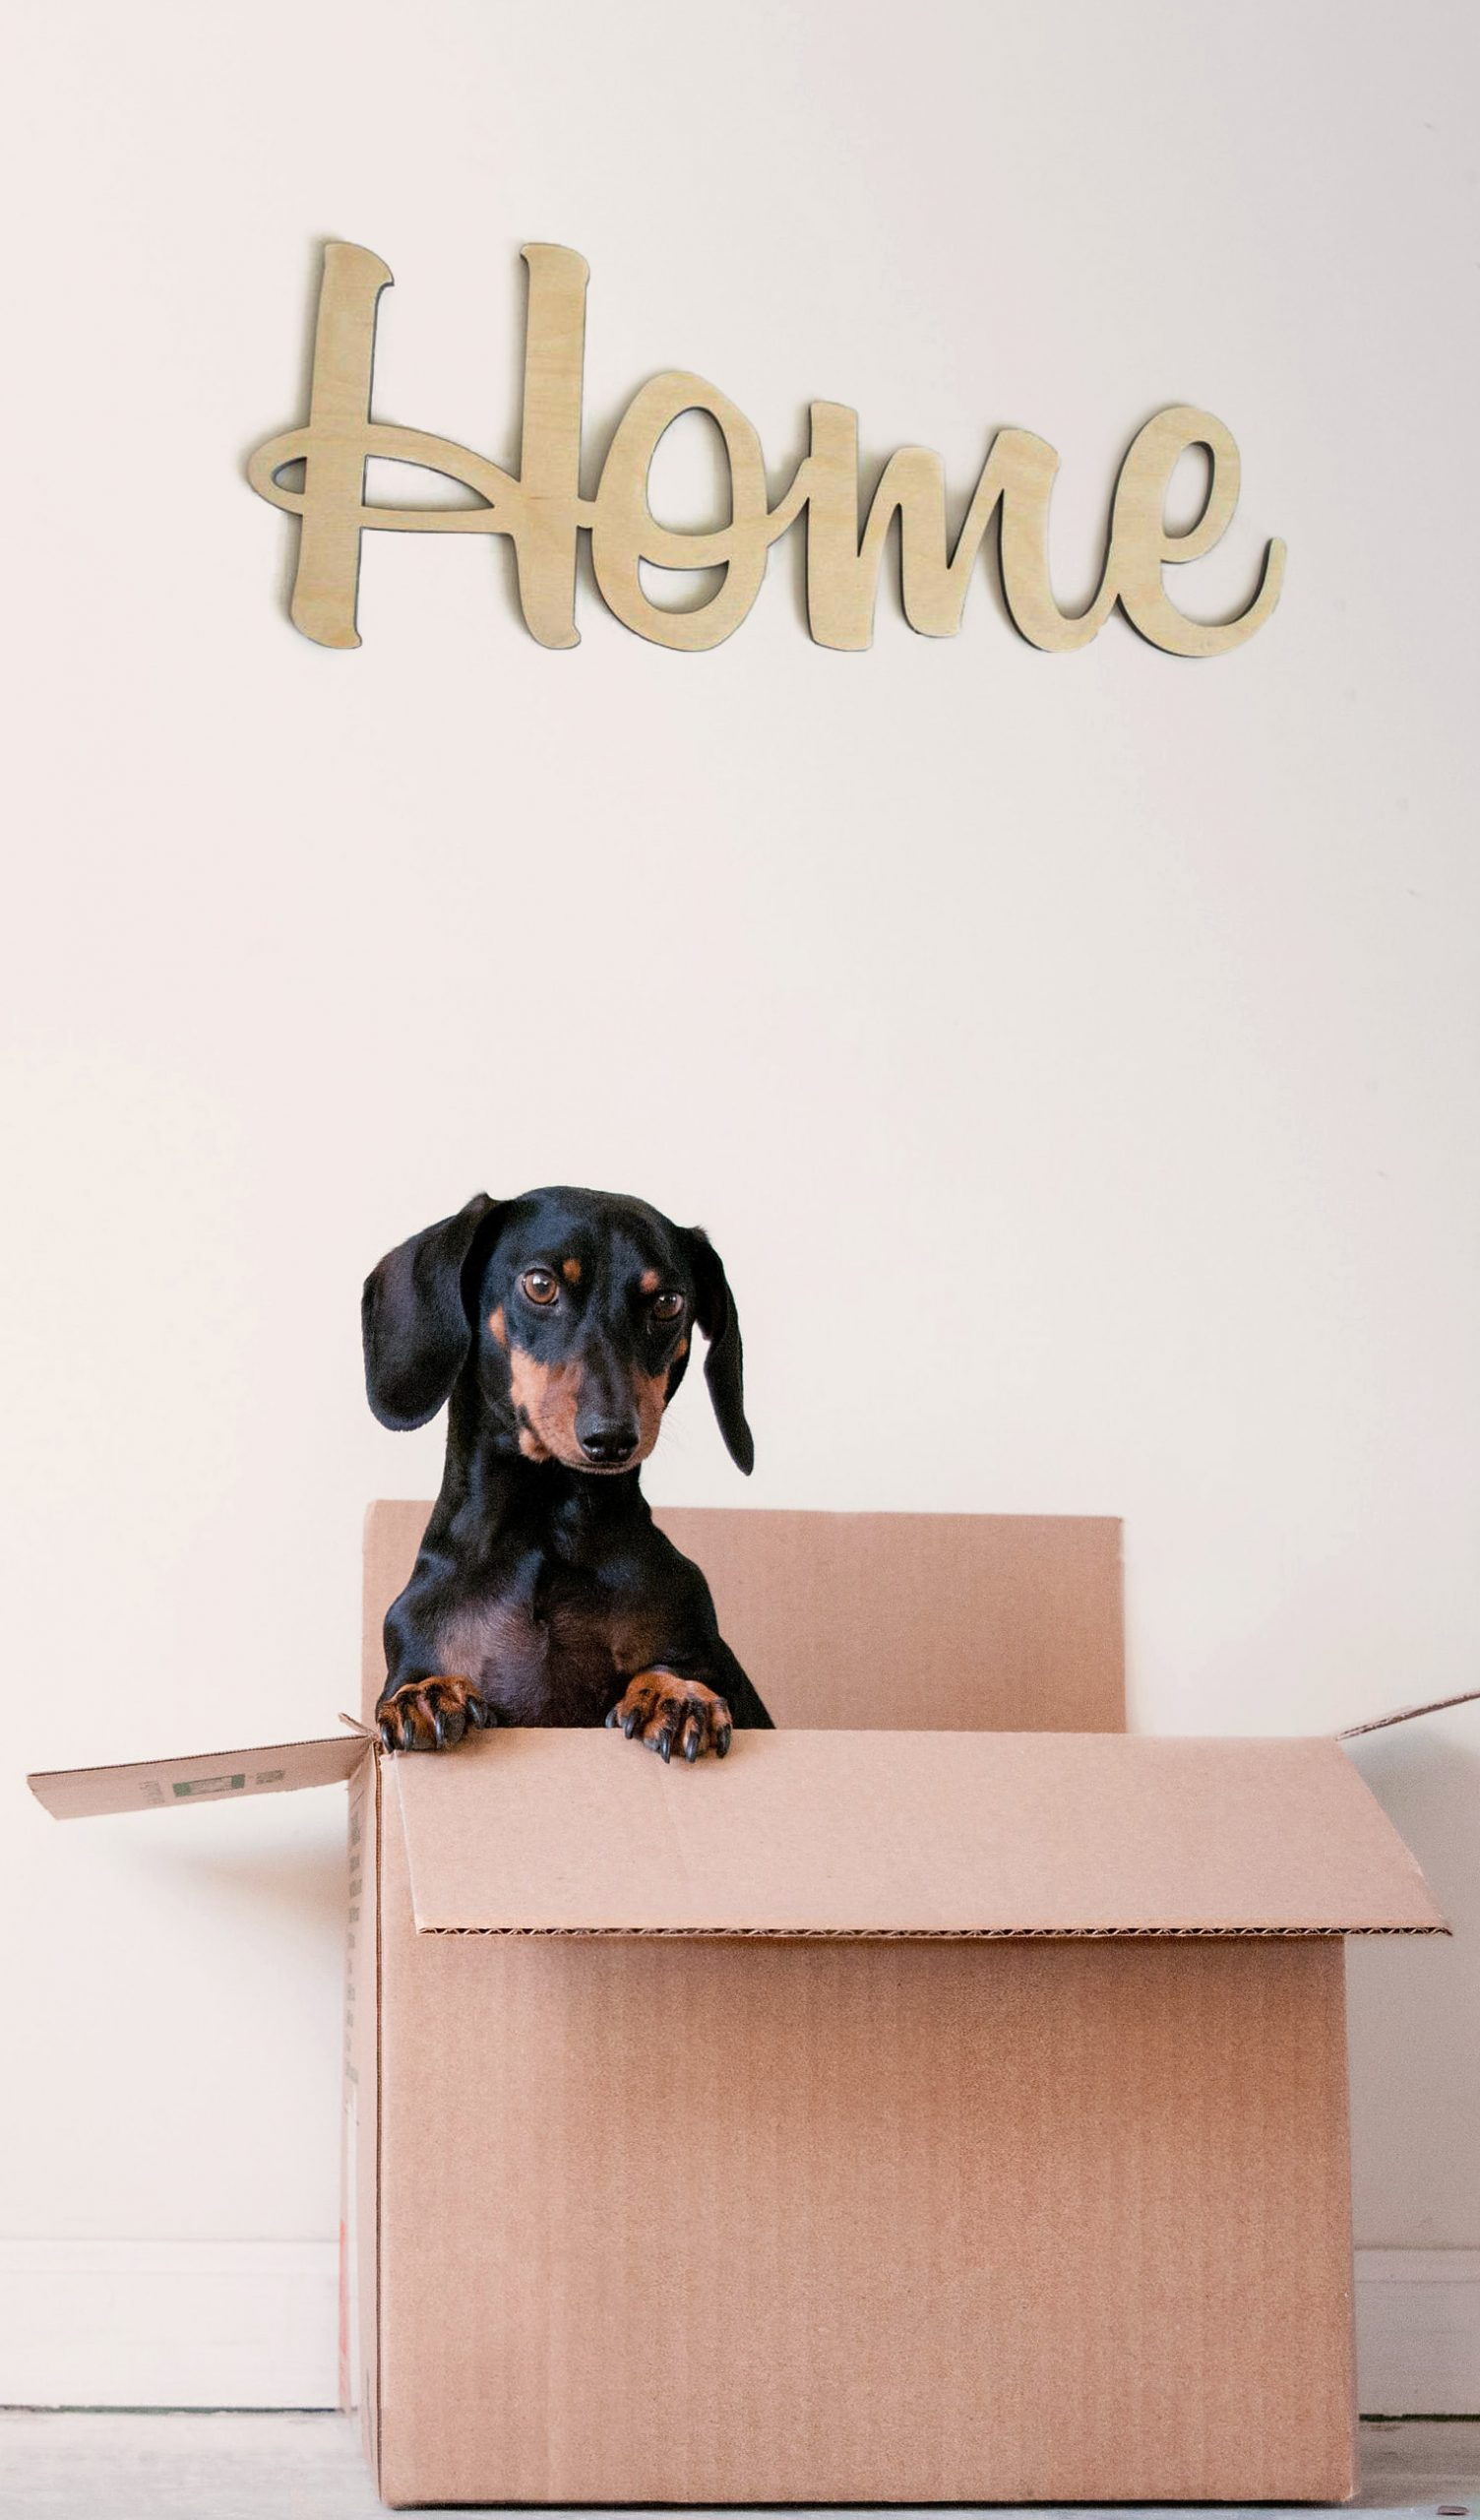 Daschund coming out of a box with a 'Home' sign on the wall.